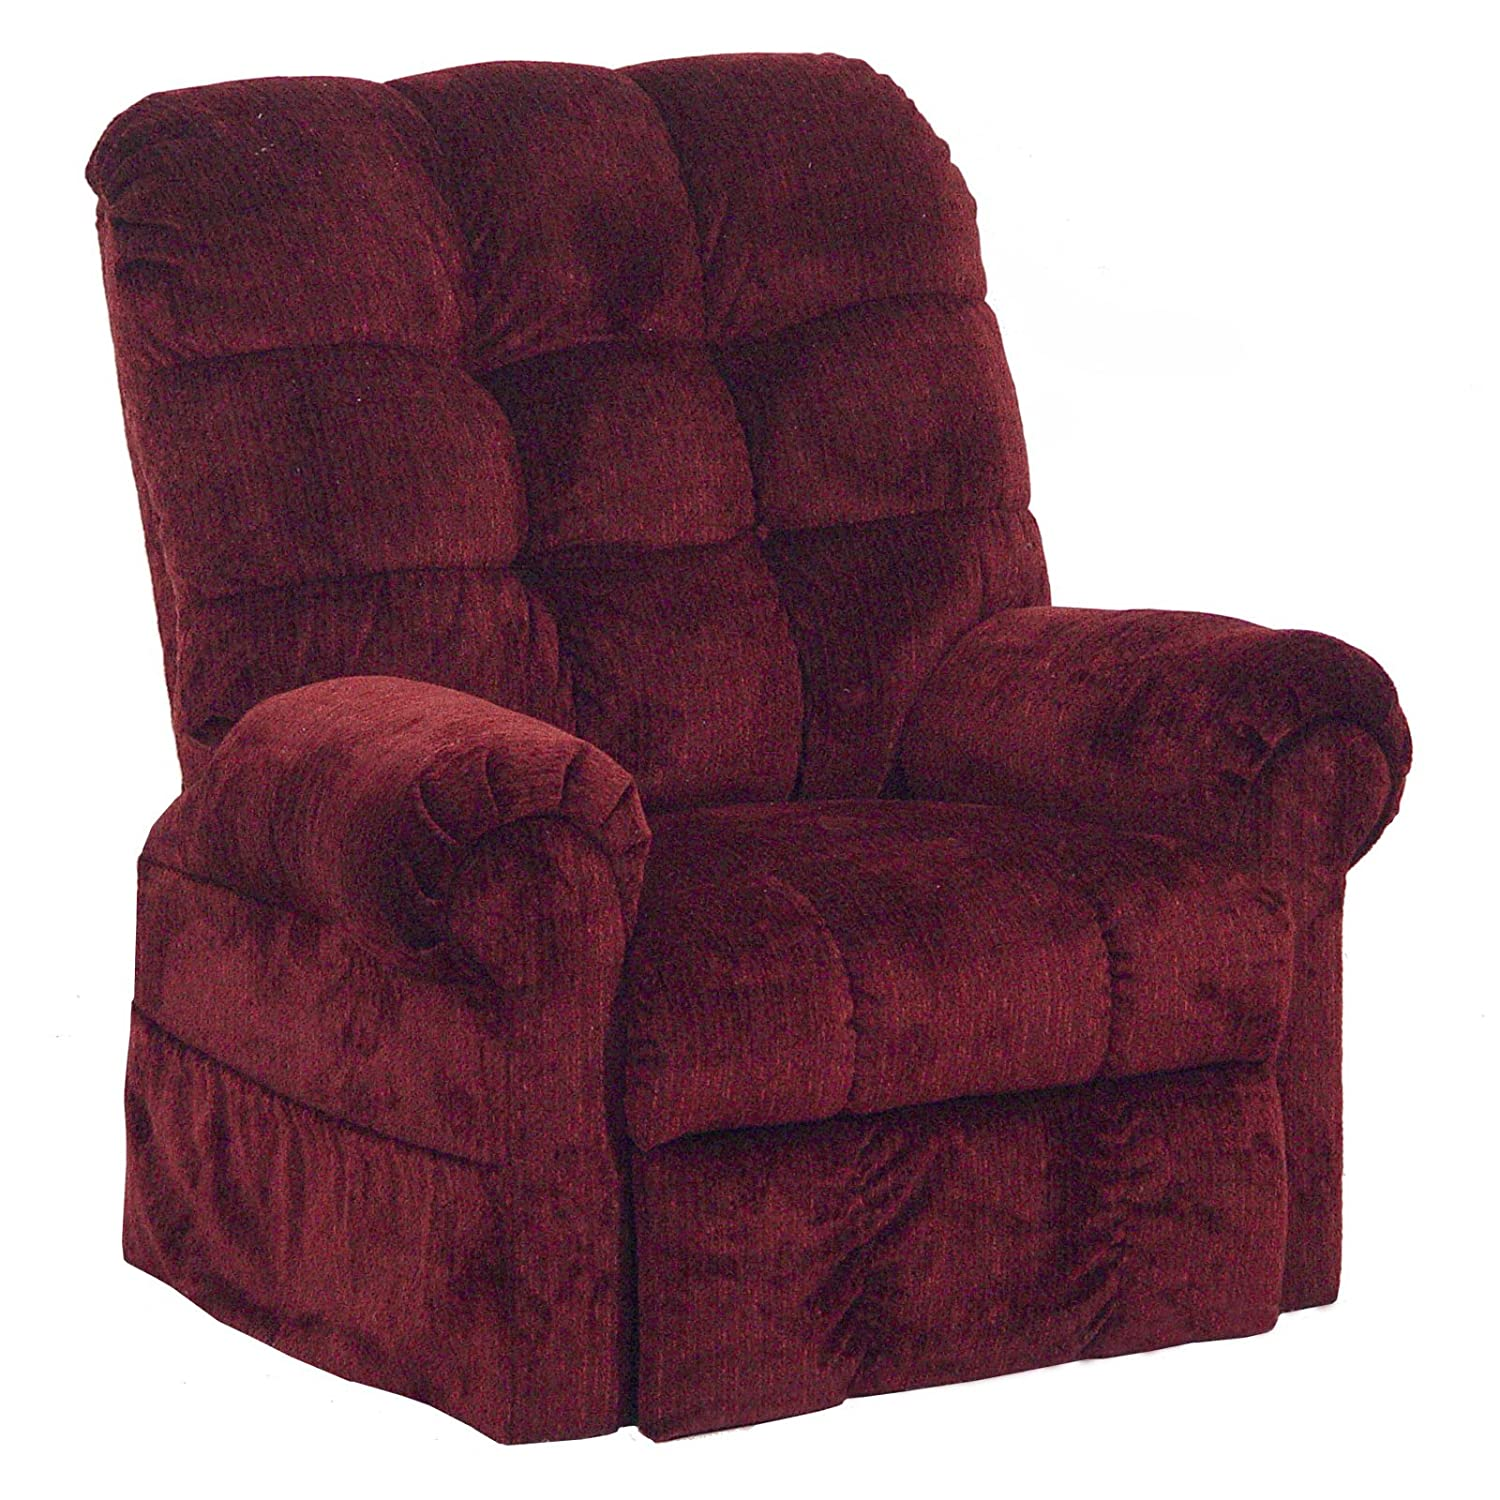 sc 1 st  Amazon.com & Amazon.com: Omni Power Lift Recliner - Chianti: Health u0026 Personal Care islam-shia.org